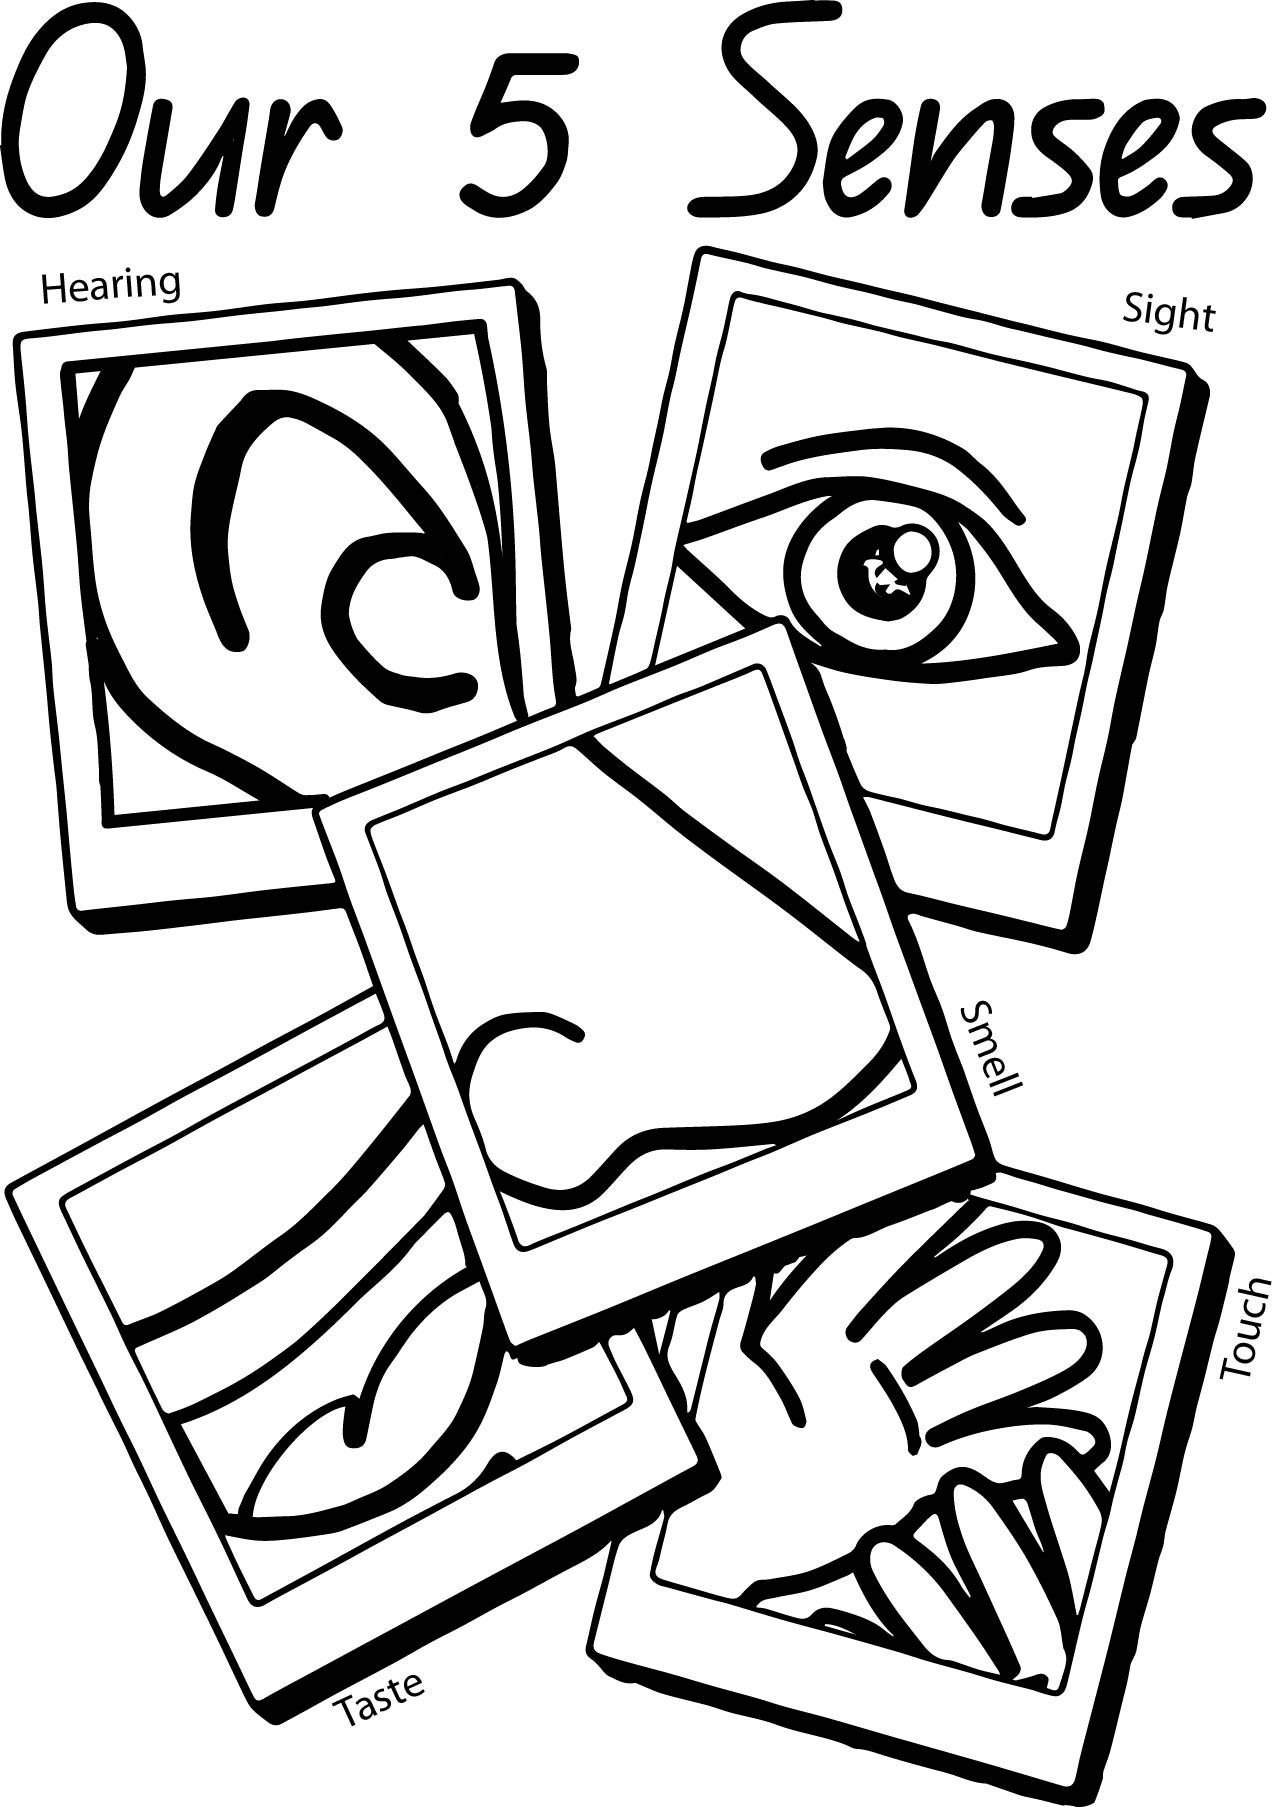 5 Senses Coloring Pages